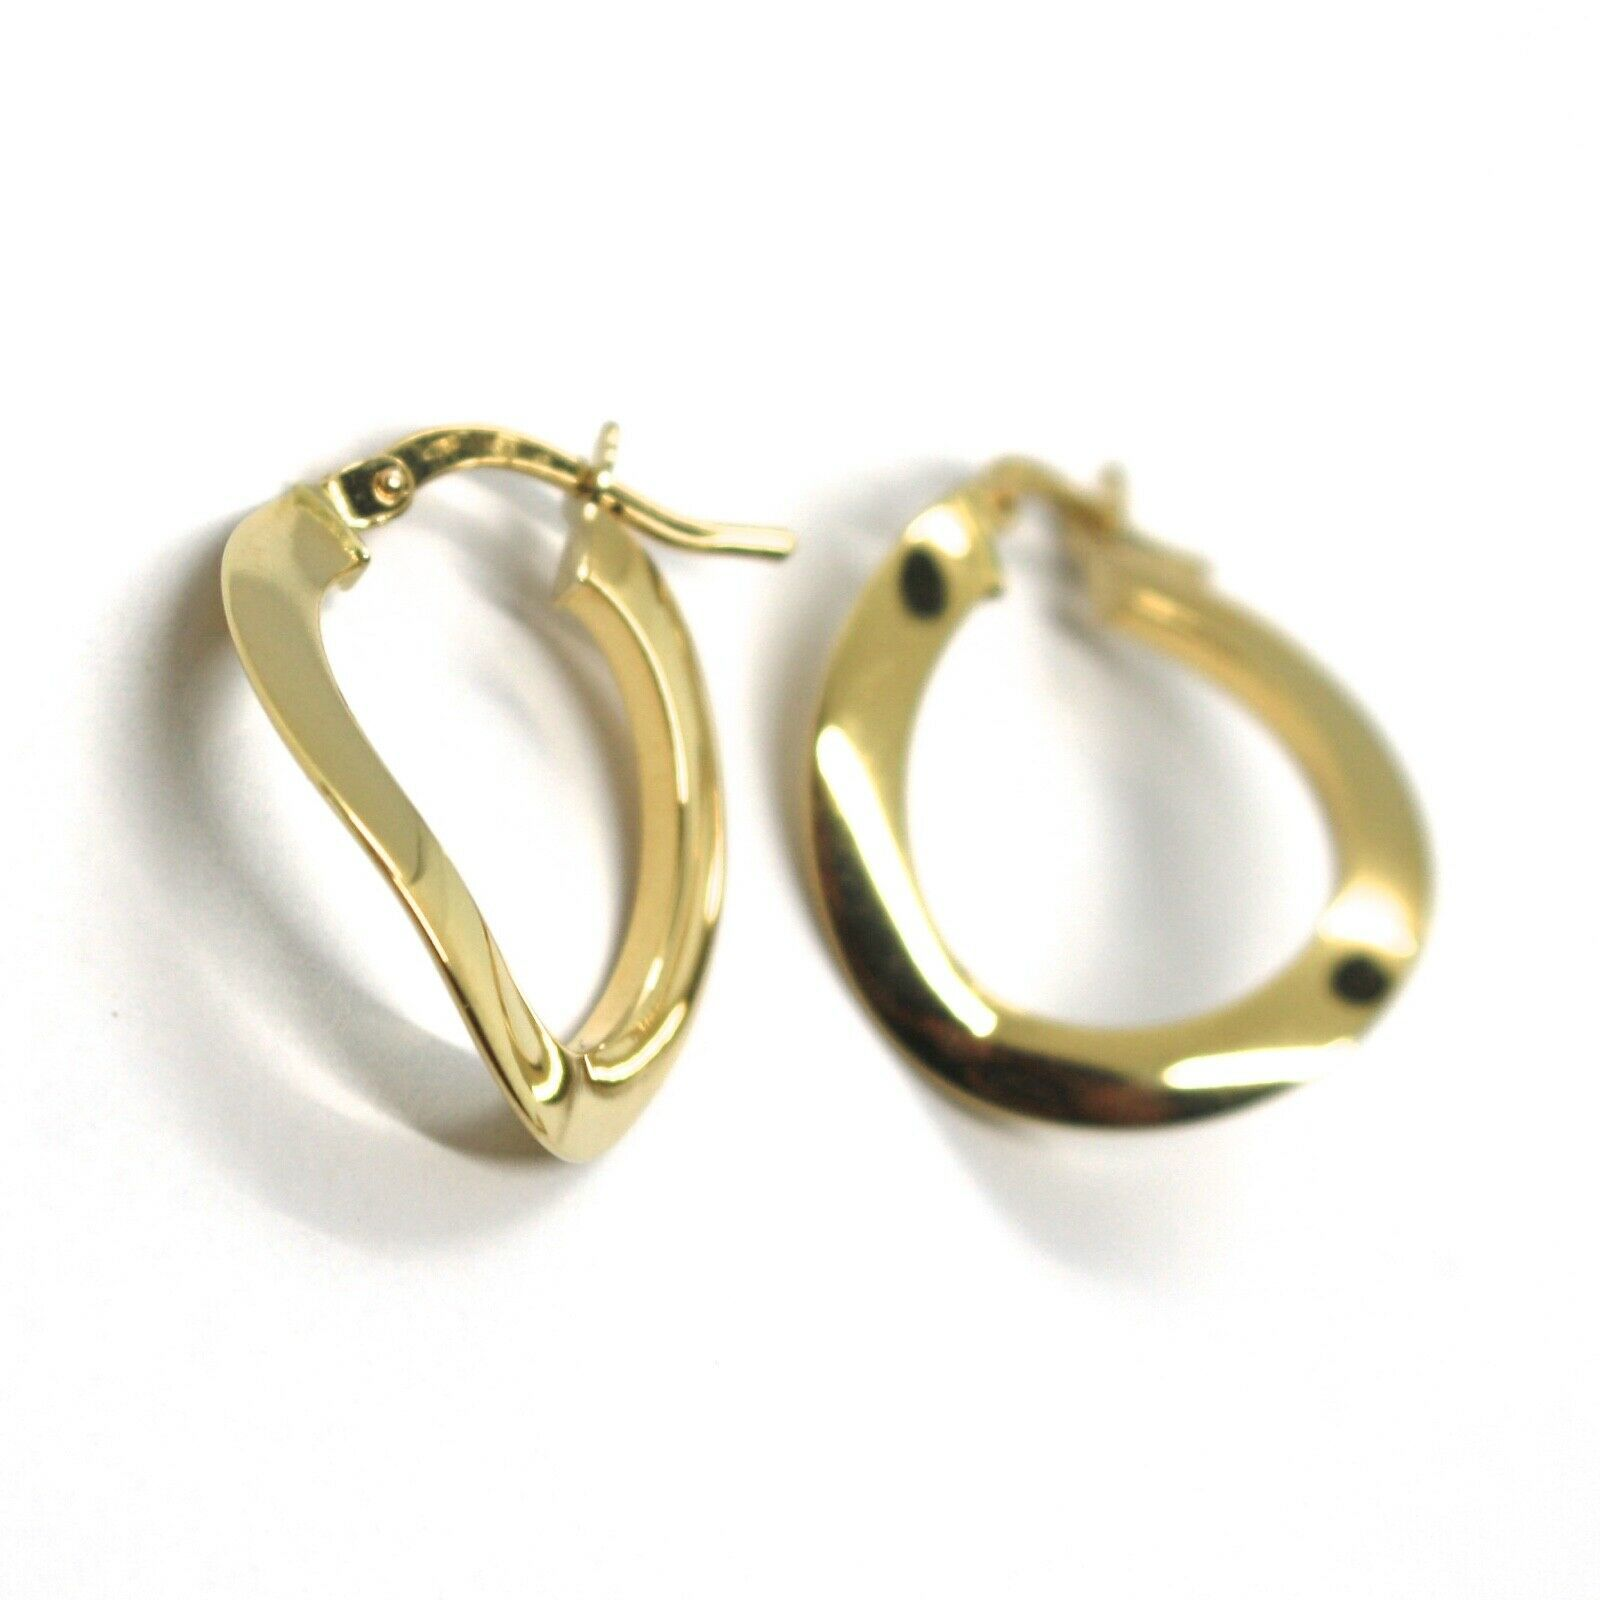 18K YELLOW GOLD CIRCLE HOOPS ONDULATE EARRINGS 20 MM, THIN SECTION 1 MM, ITALY